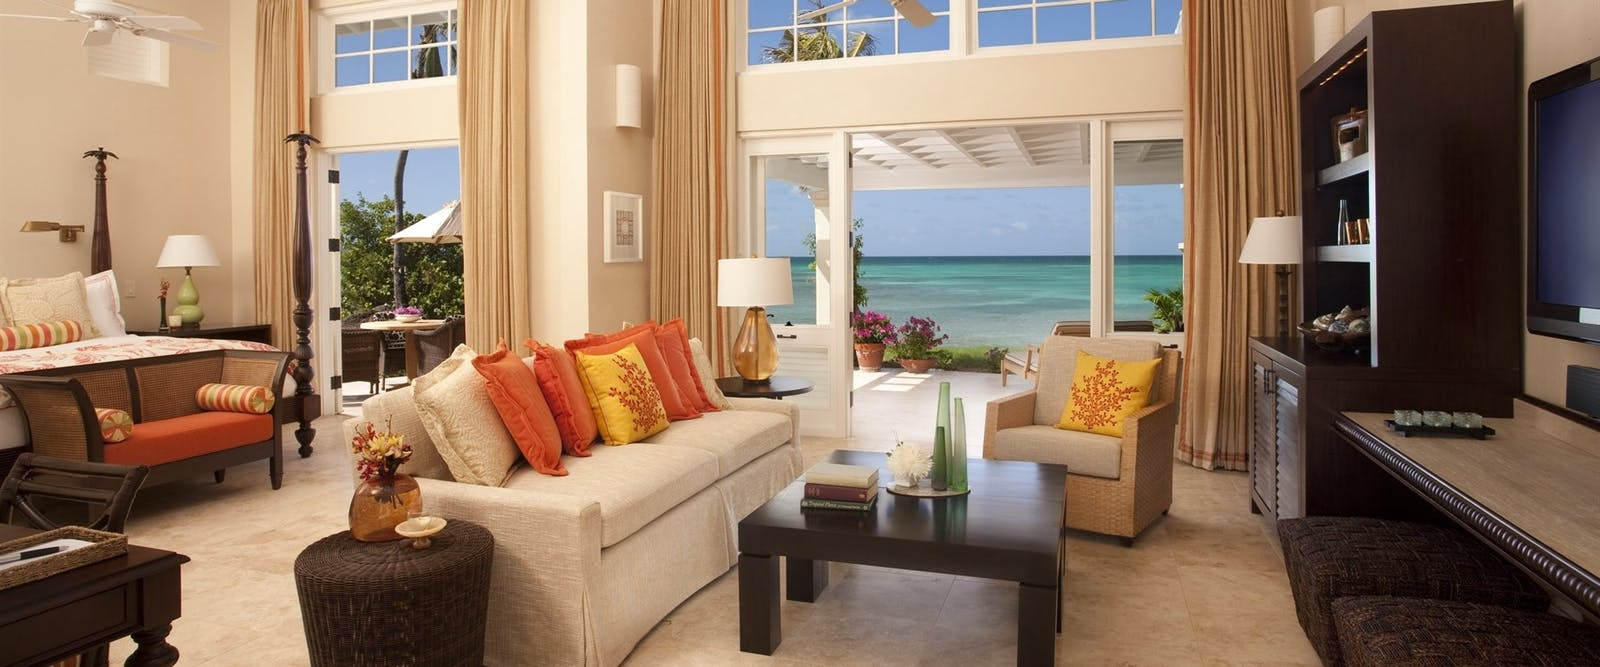 Beach Side Suite at Jumby Bay Island, Antigua